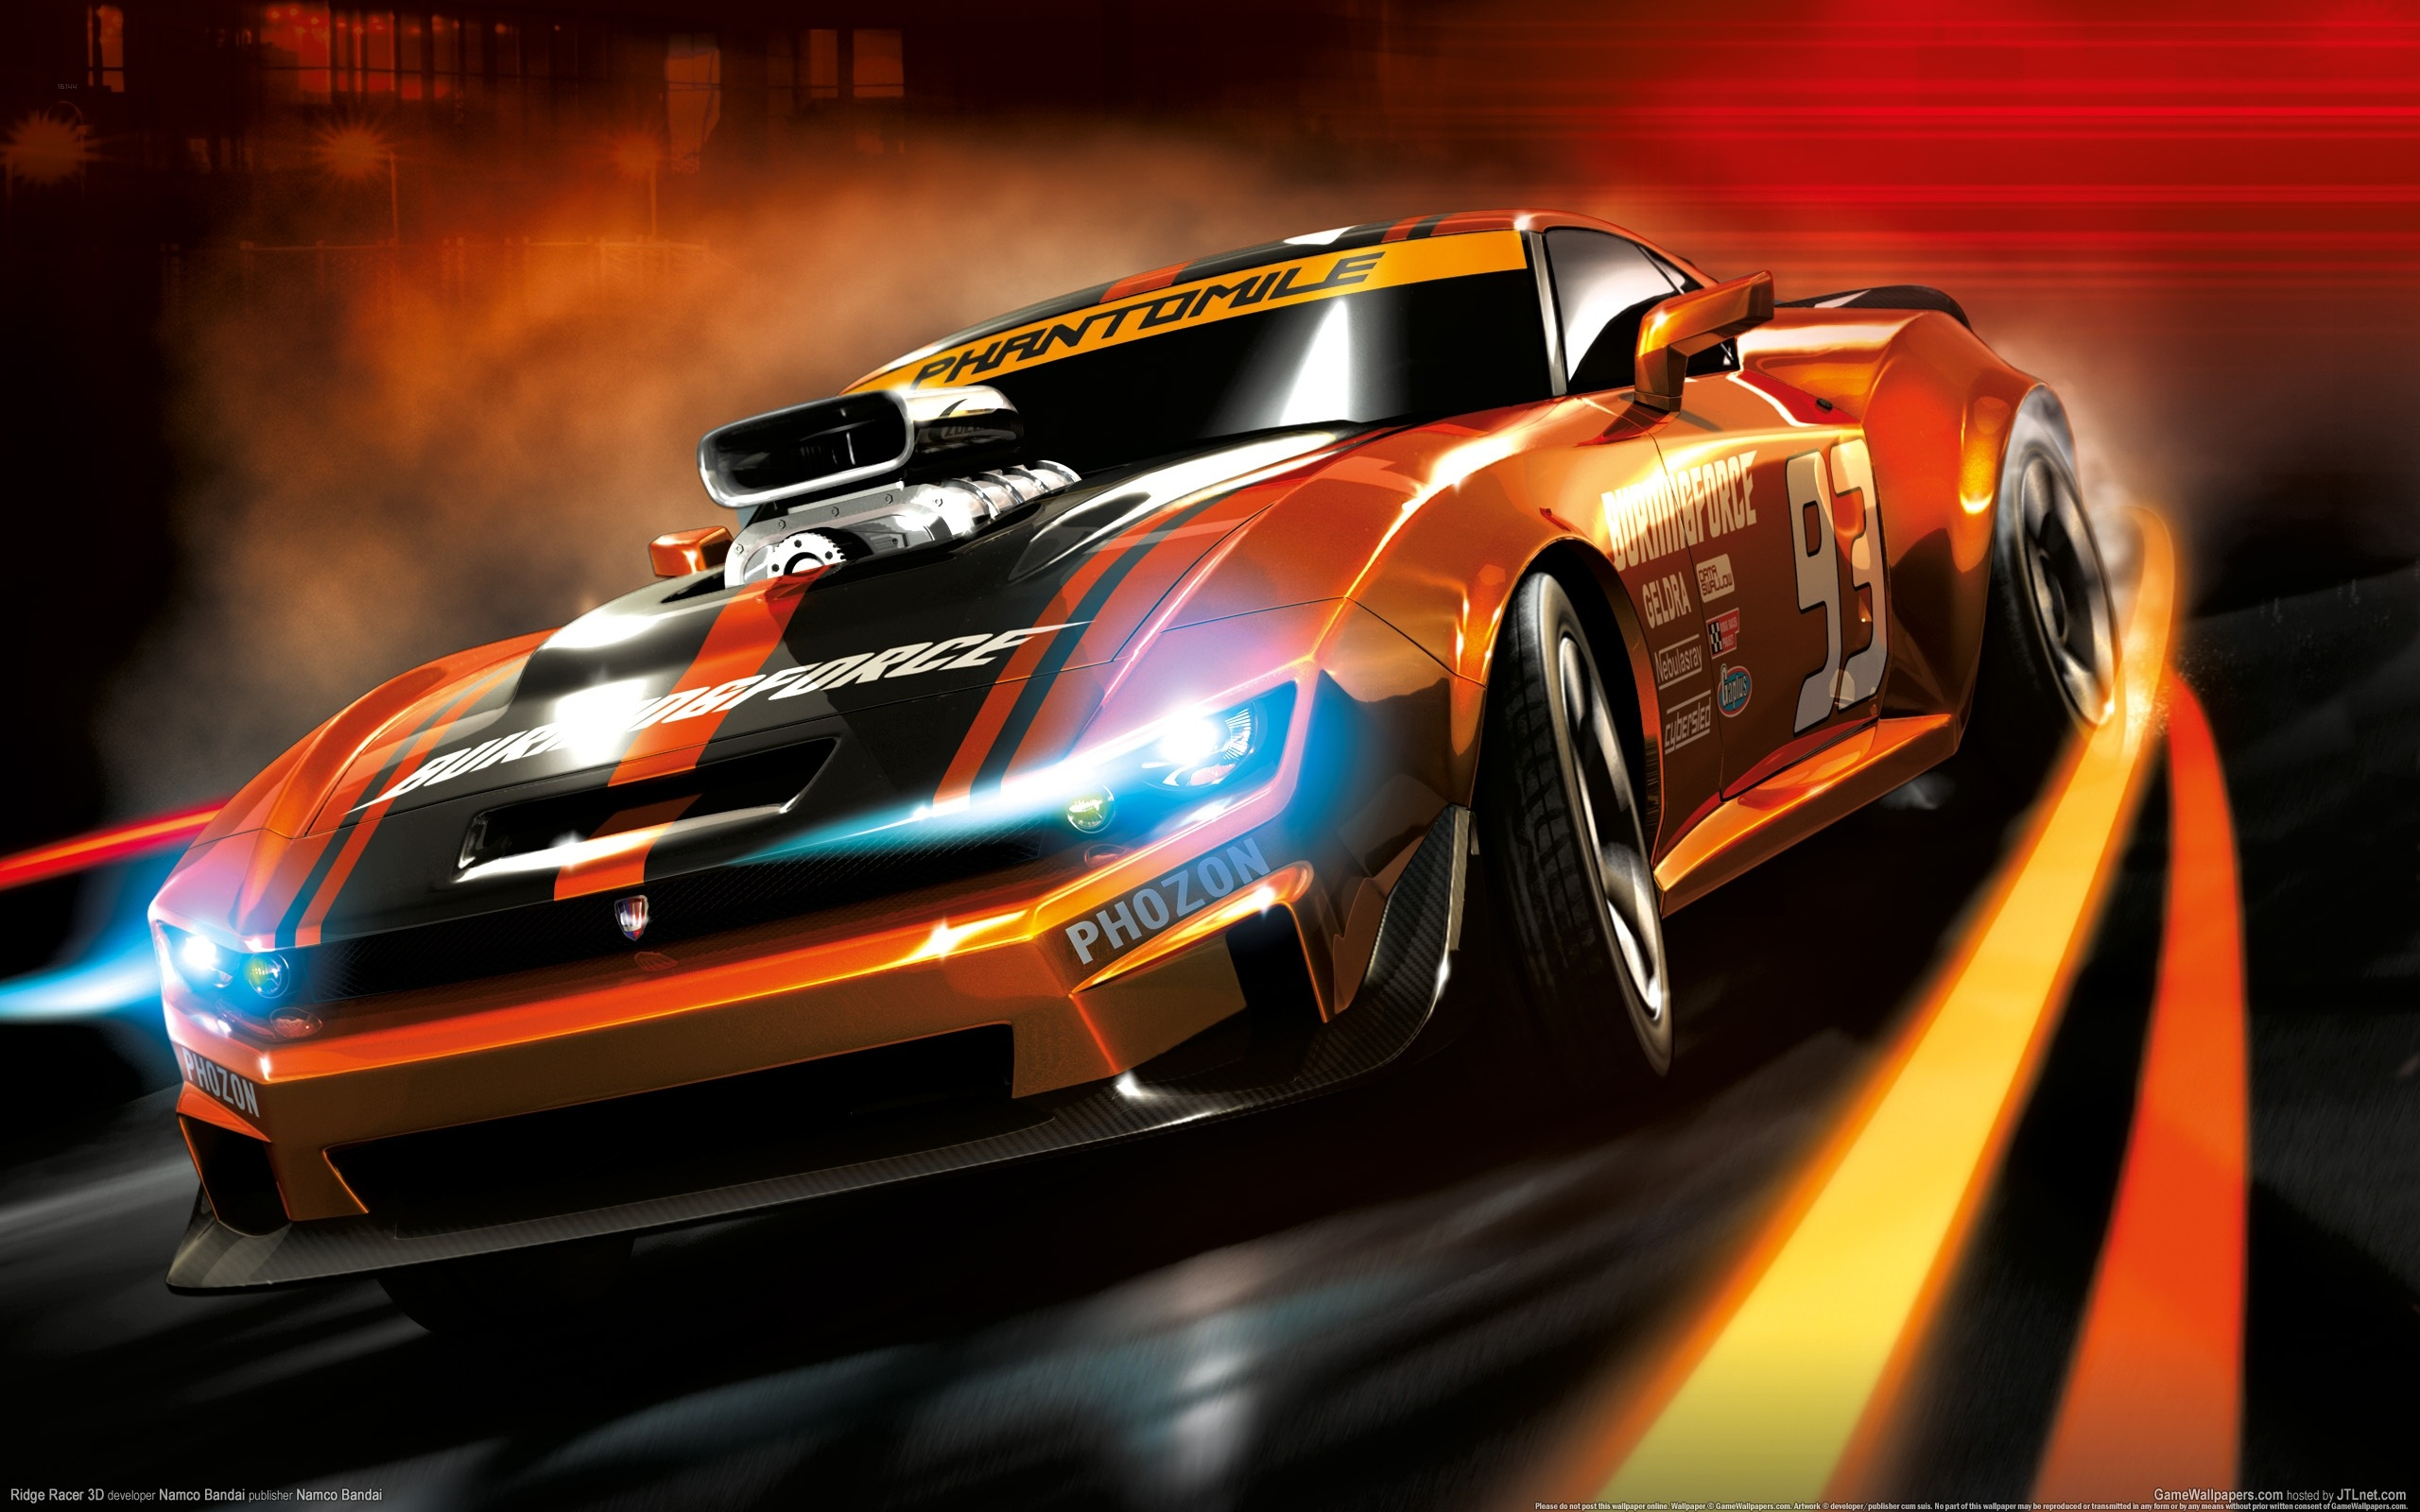 Wallpaper Ridge Racer 3d Hd 2560x1600 Hd Picture Image